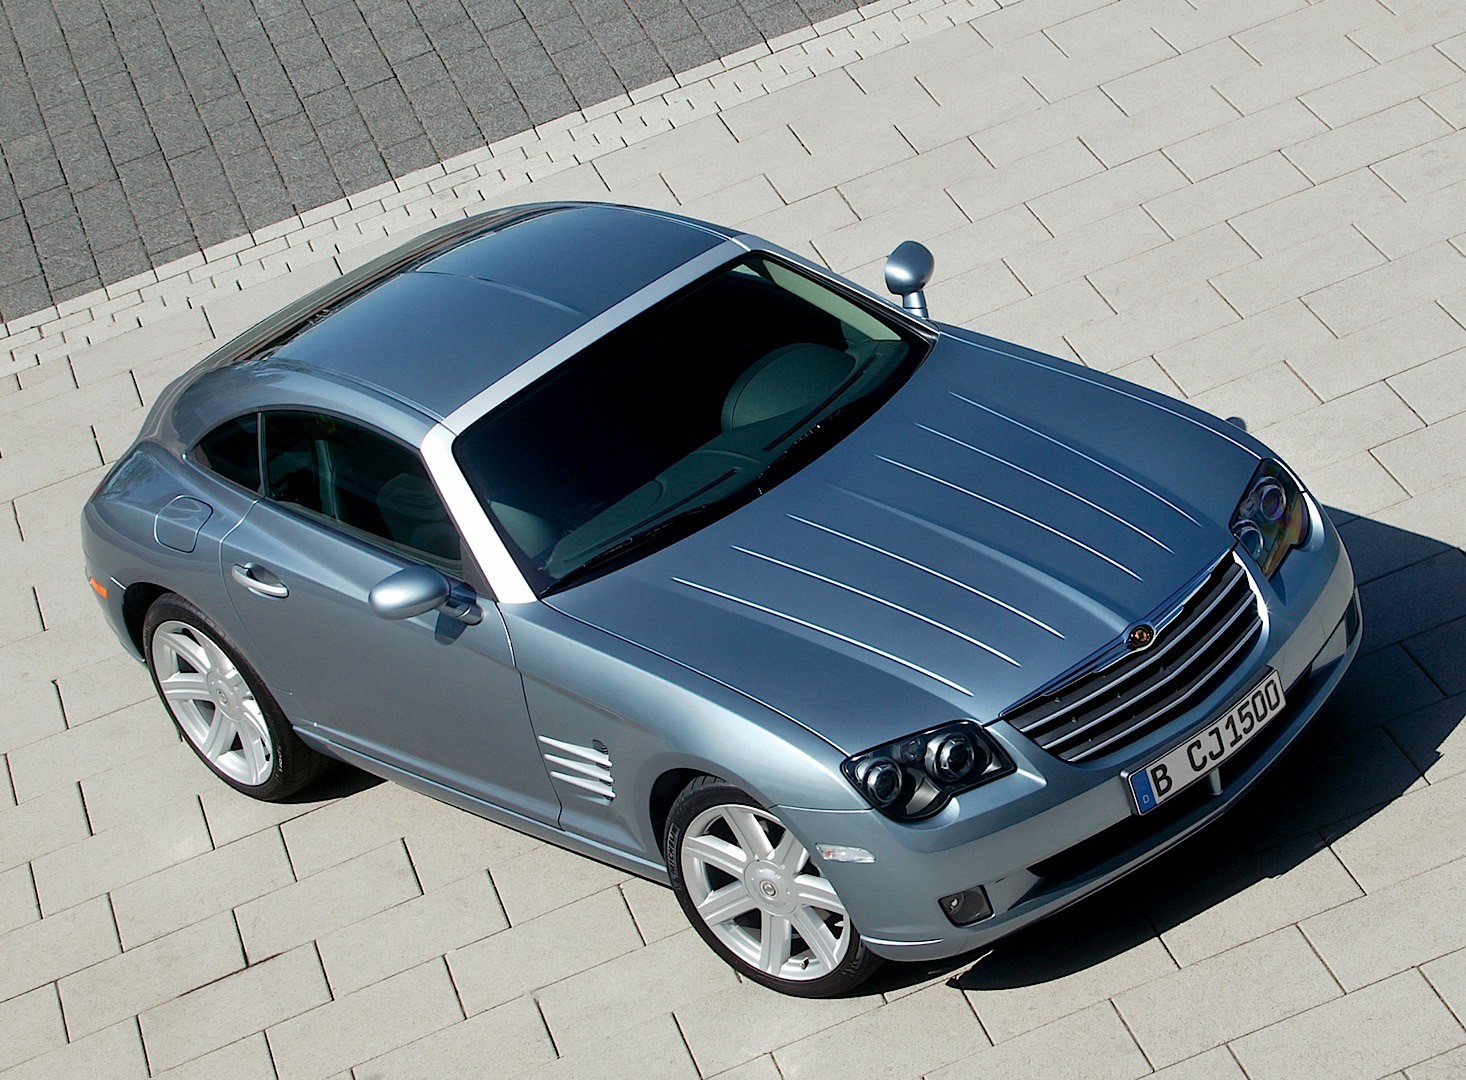 Autos News, Articles, Stories & Trends for Today